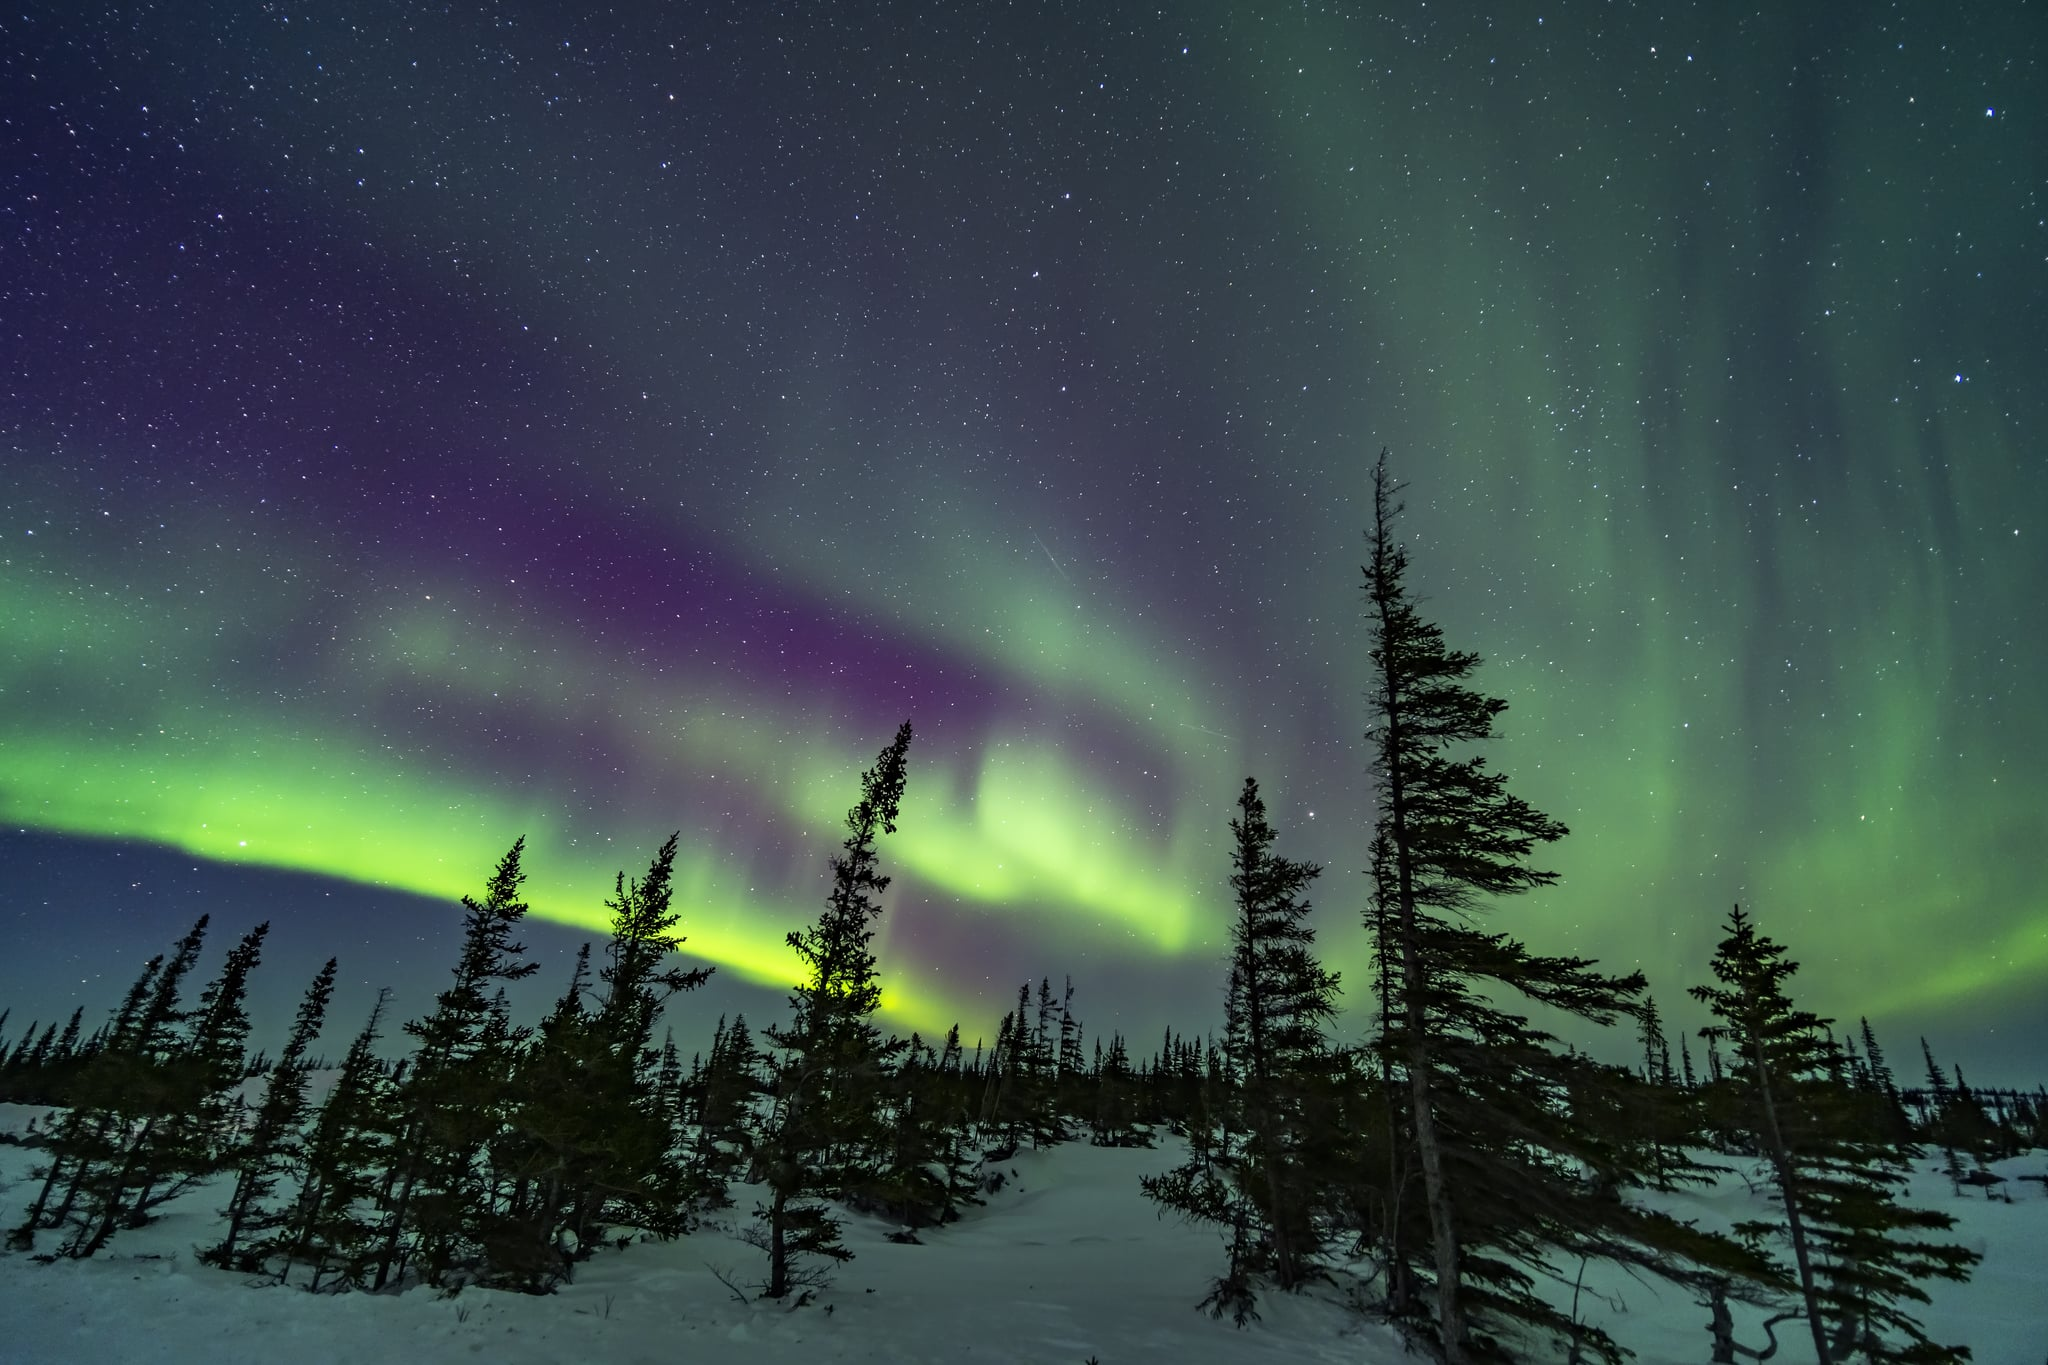 A colourful aurora over the wind-shaped trees of the boreal sub-Arctic forest at the Churchill Northern Studies Centre, March 18, 2020. Arcturus is rising between the two trees right of centre. This is a single 15-second exposure at f/2 with the Venus Optics 15mm lens and Sony a7III at ISO 1600. (Photo by: Alan Dyer/VW PICS/Universal Images Group via Getty Images)